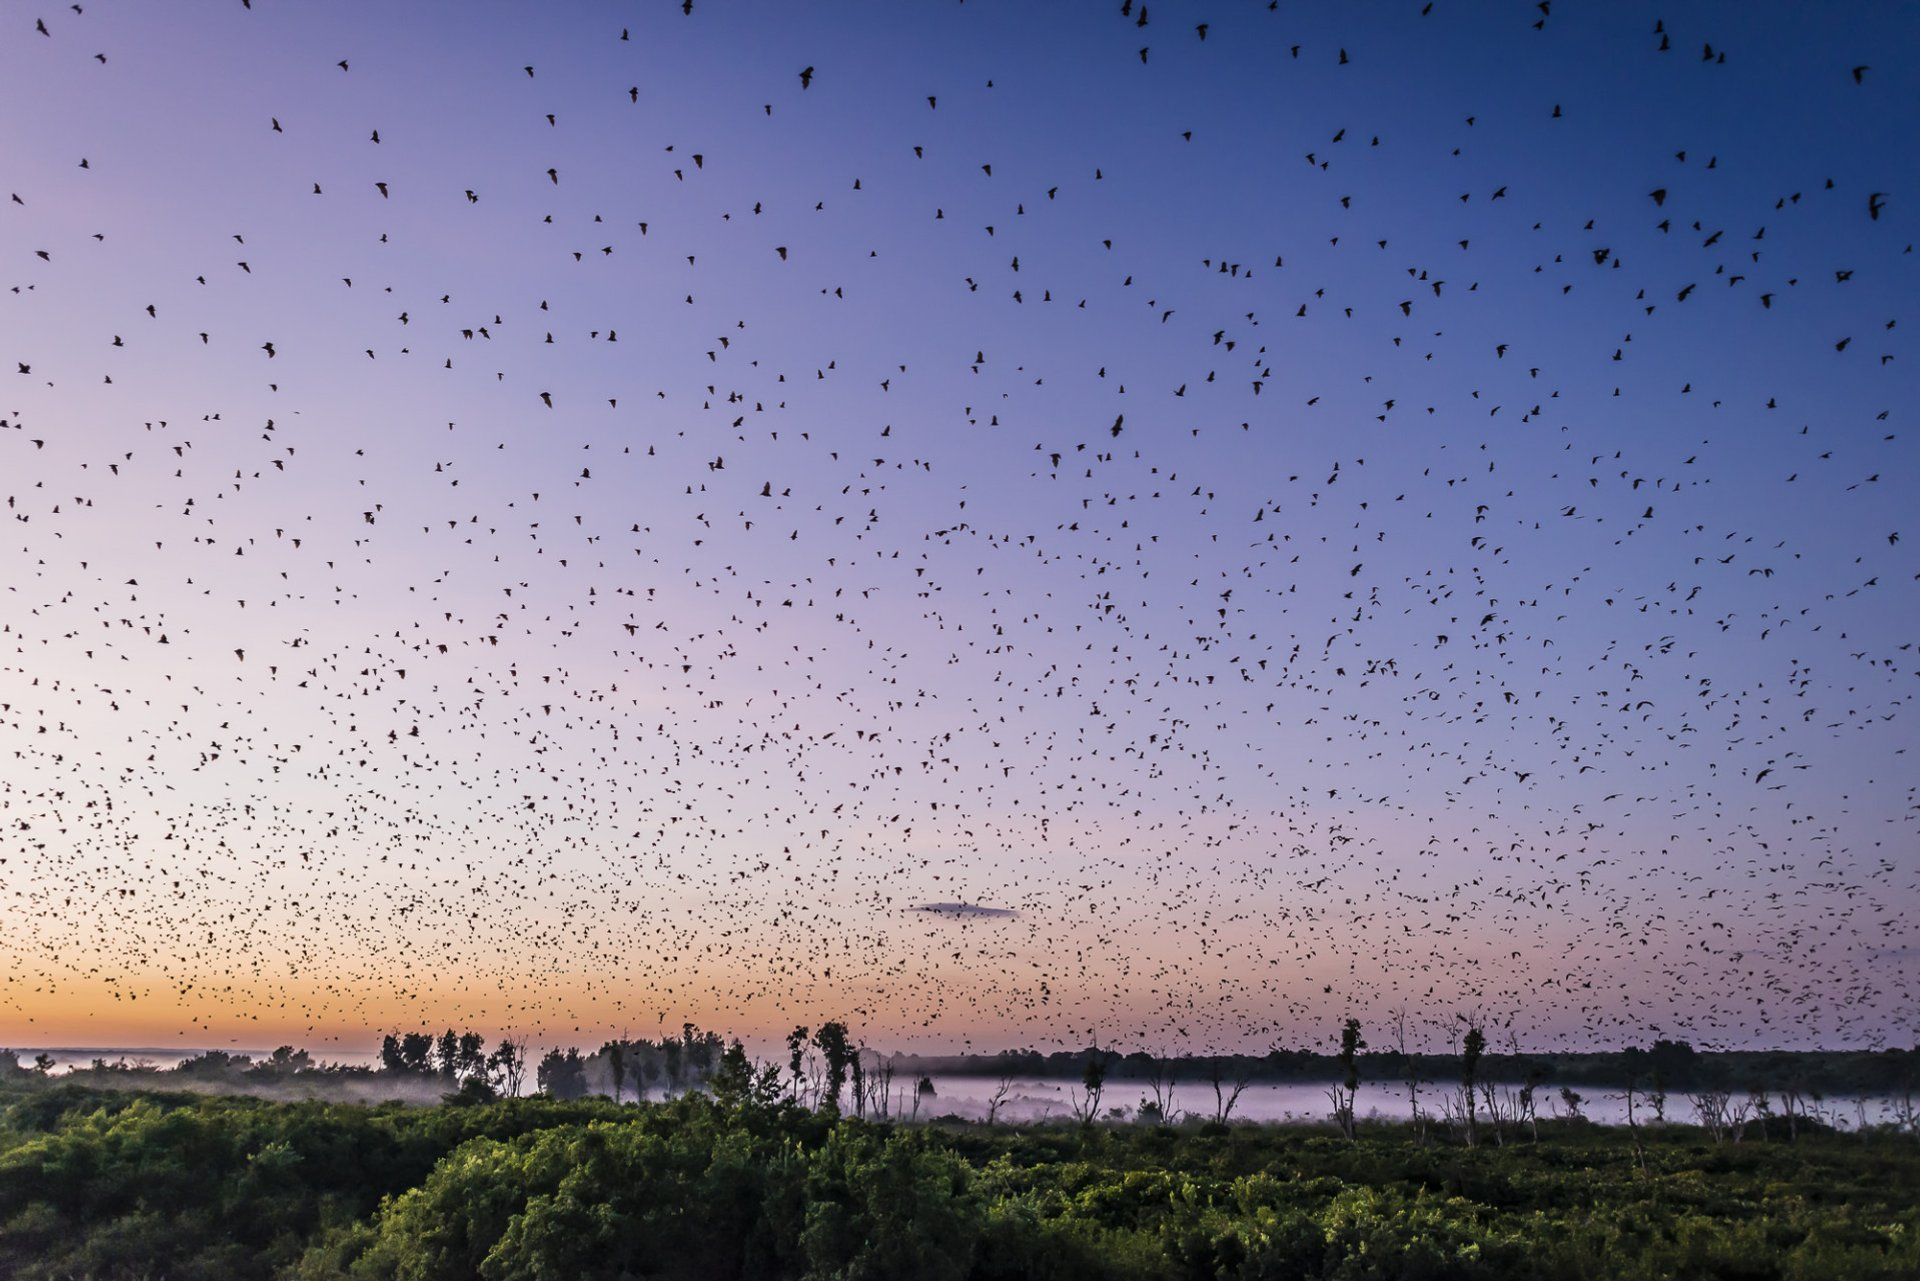 Best time for Bat Migration in Zambia 2020